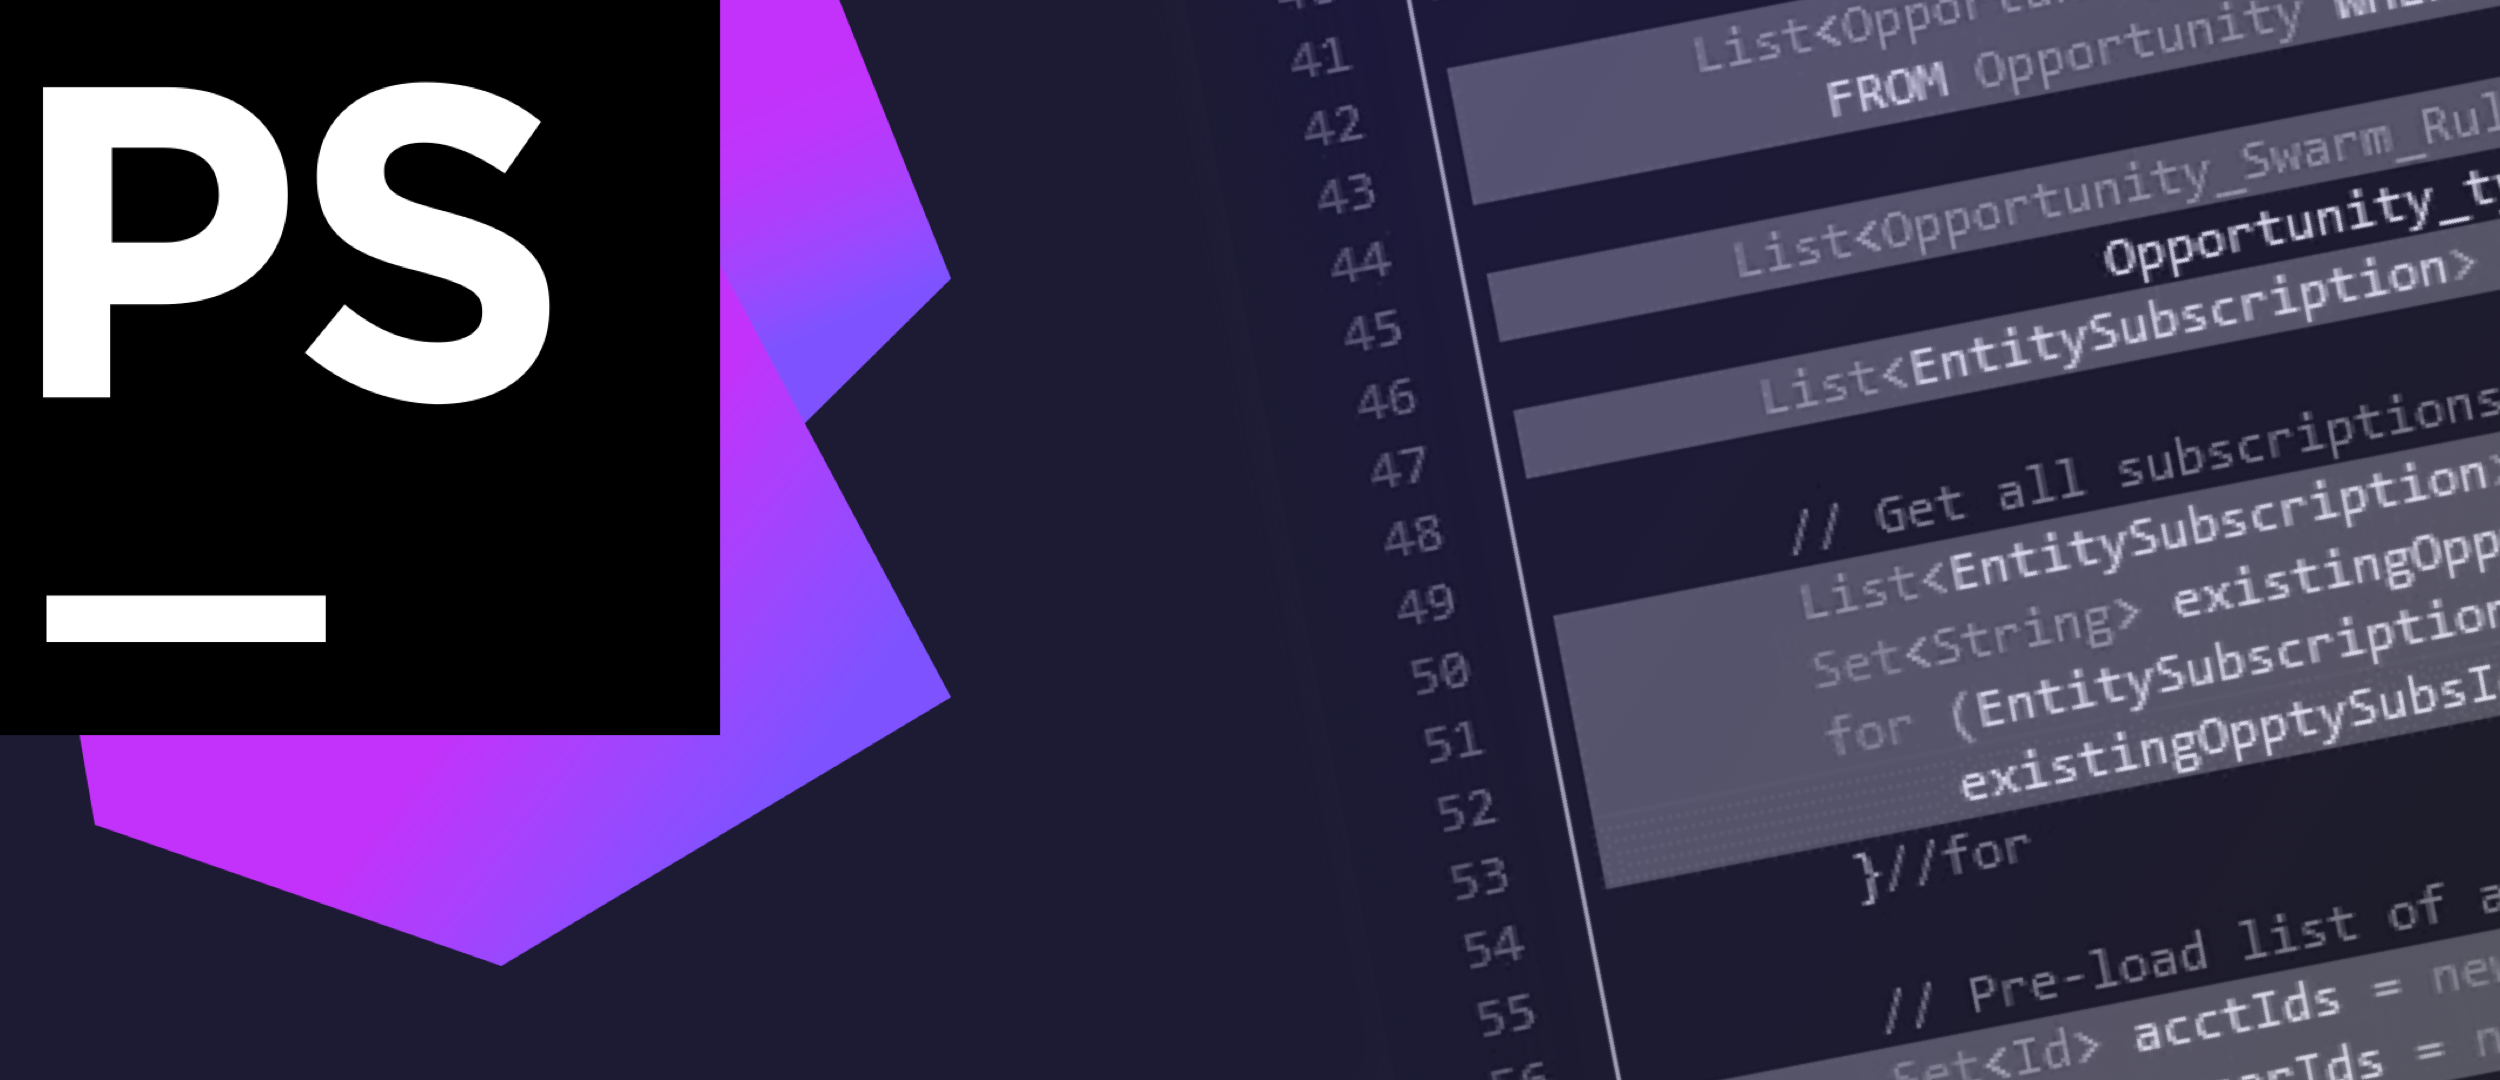 /running-phpunit-tests-with-code-coverage-in-phpstorm-when-working-in-docker-12724c8b0f58 feature image